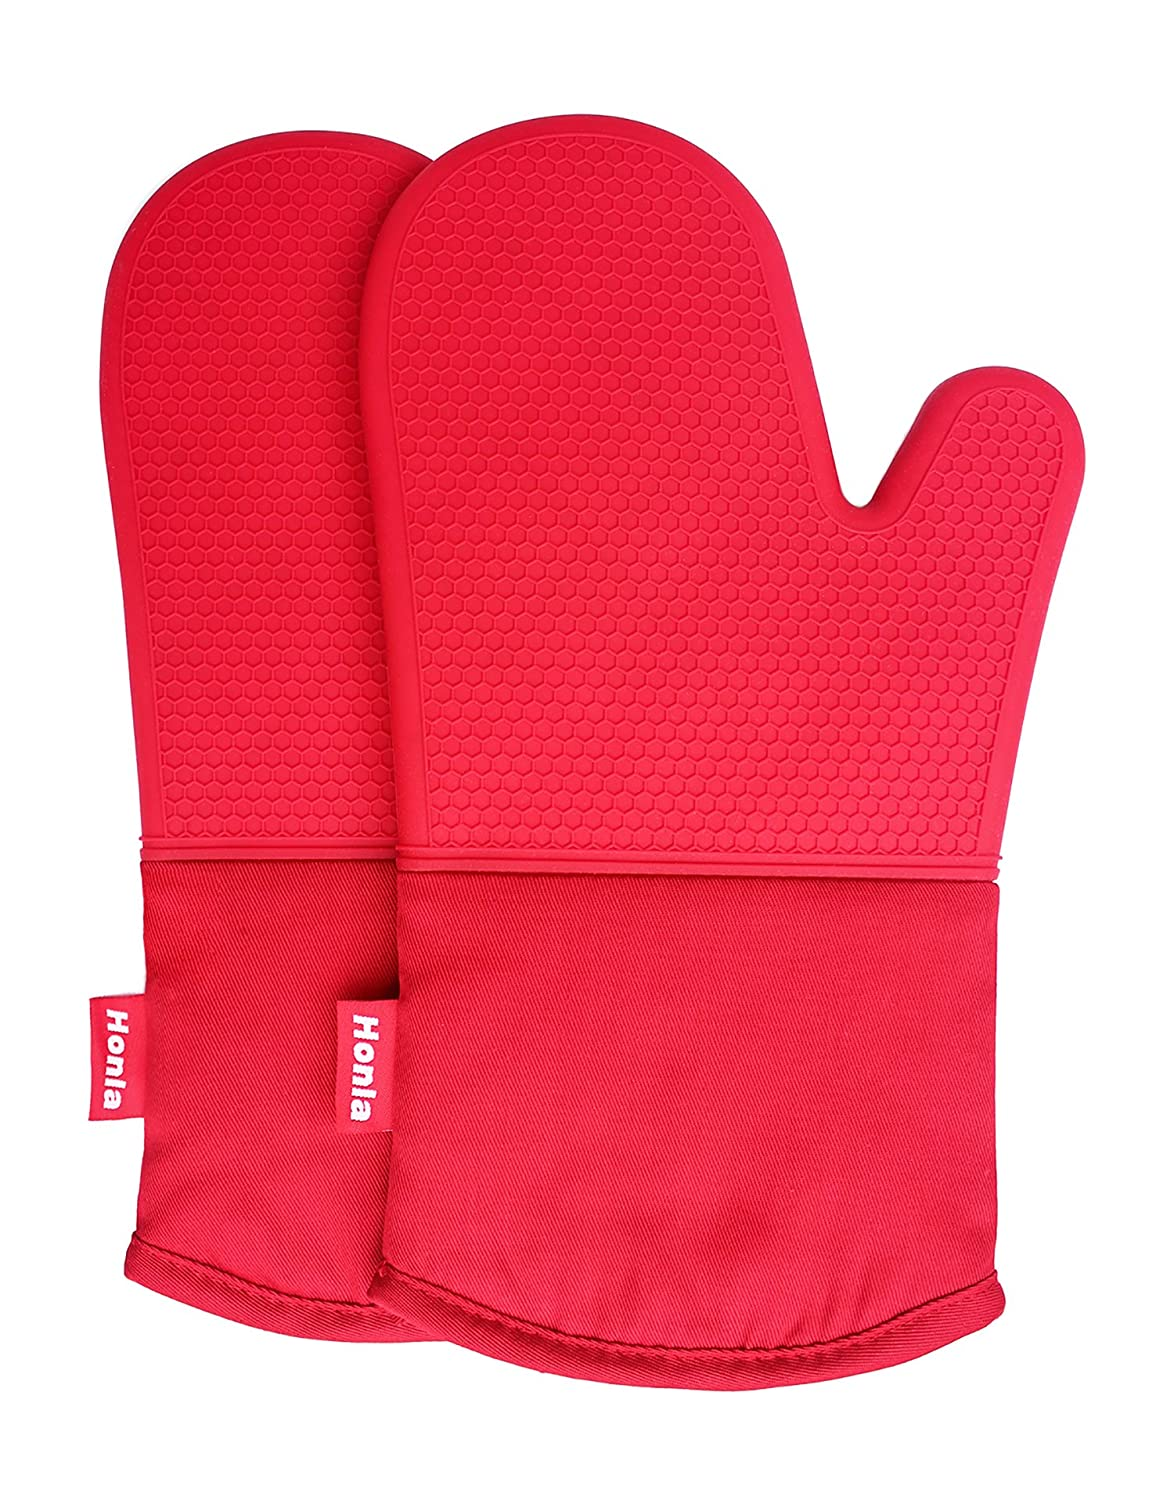 Honla Silicone Oven Mitts - Heat Resistant to 500° F,1 Pair of Non-Slip Kitchen Oven Gloves for Cooking,Baking,Grilling,Barbecue Potholders,Red